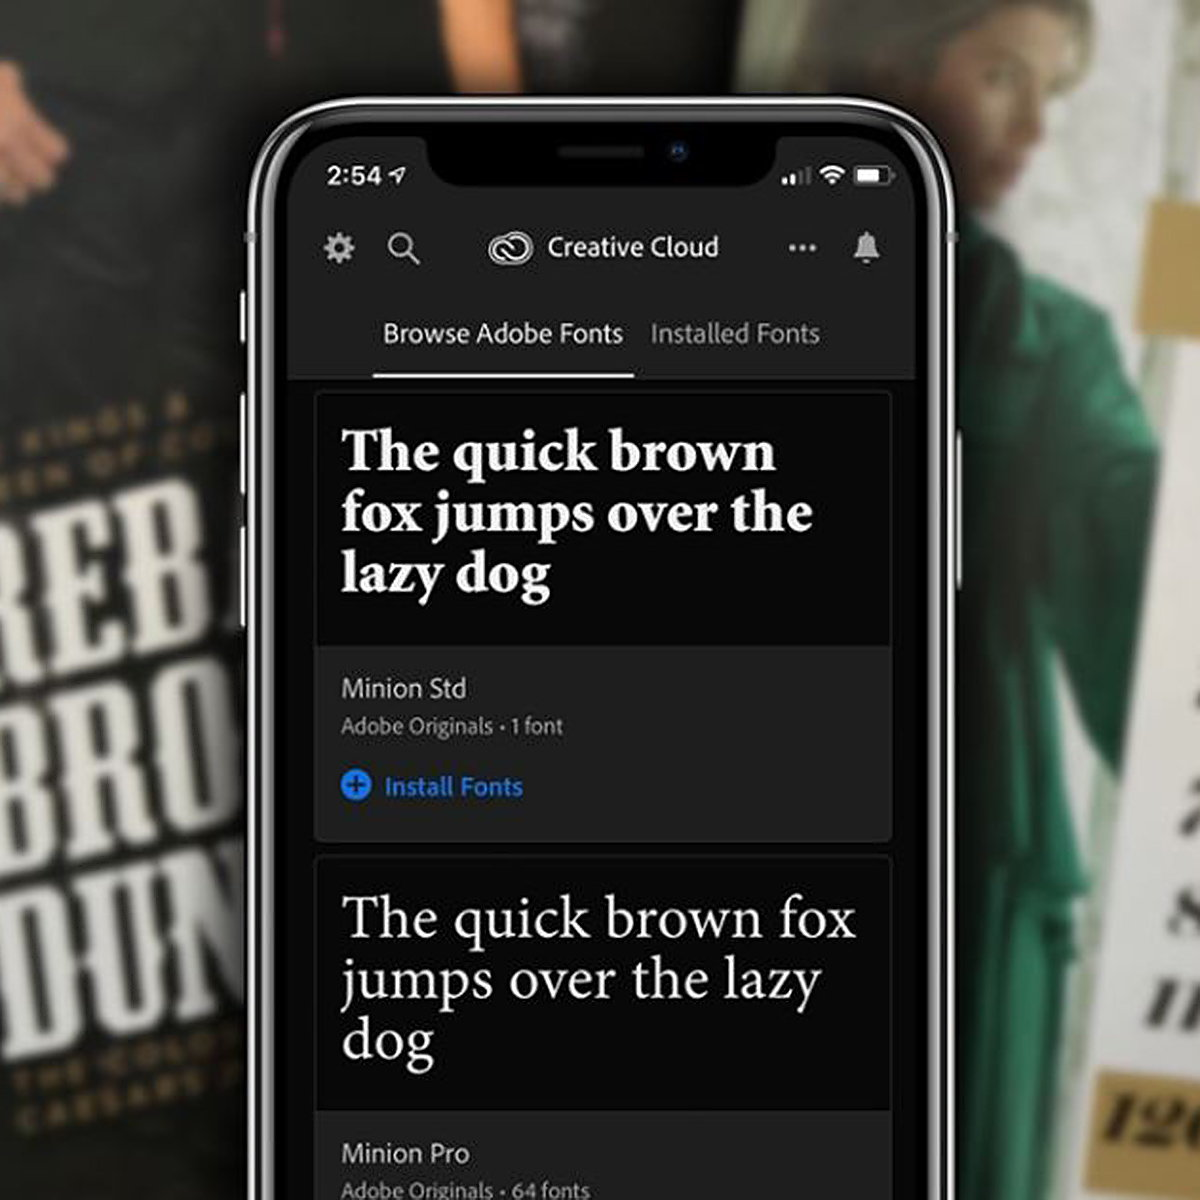 Adobe Brings Fonts to iOS with Creative Cloud Mobile App